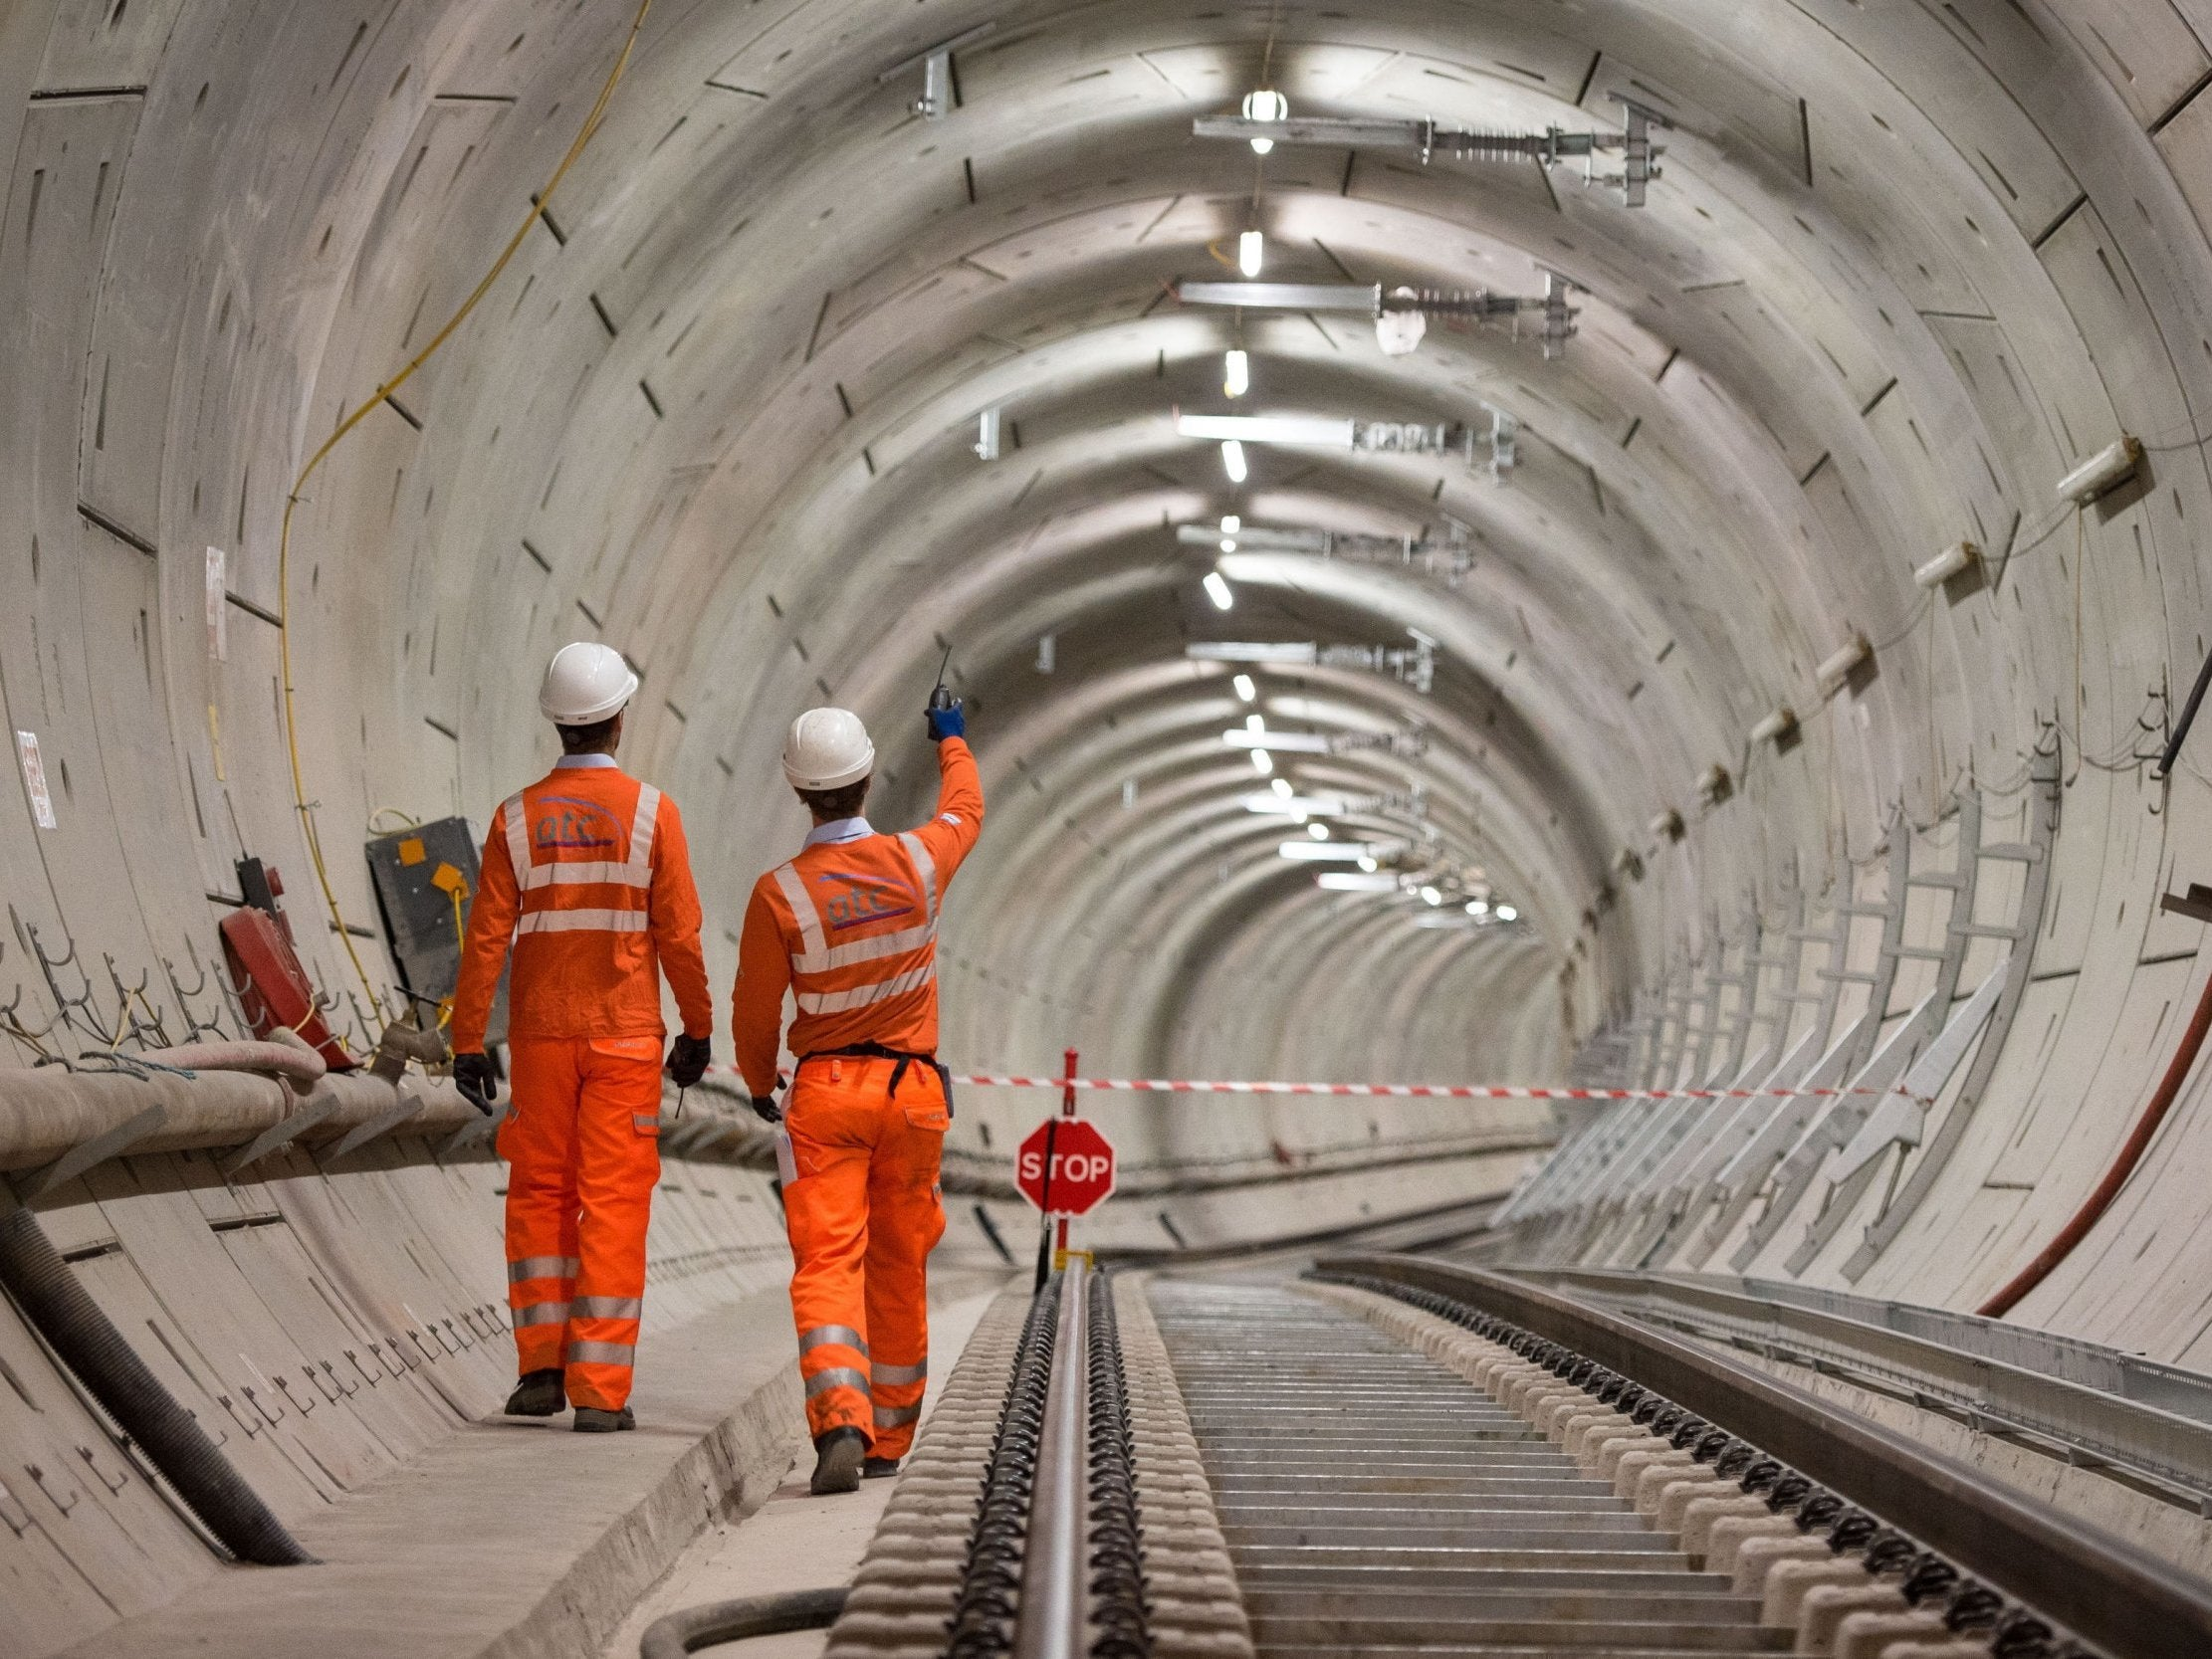 Kier to cut 1,200 jobs as troubled Crossrail contractor slashes costs